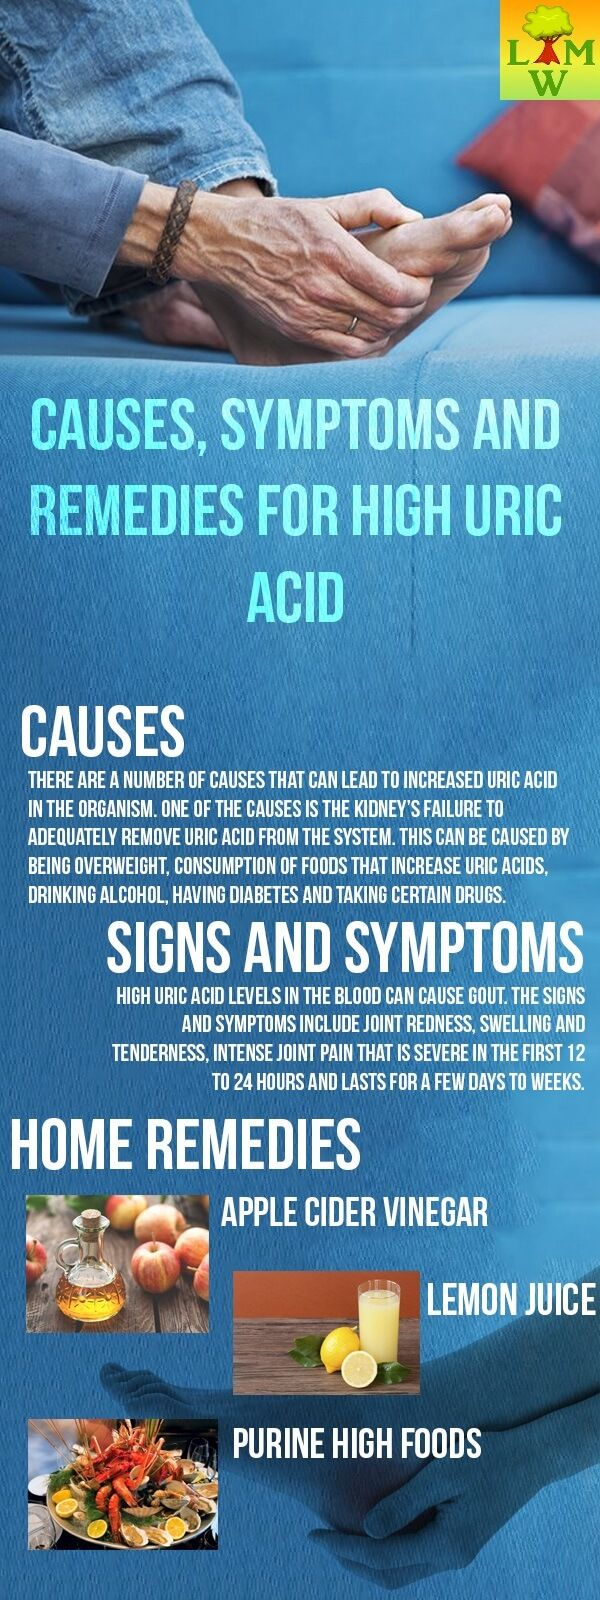 There are a number of causes that can lead to increased uric acid in the organism. One of the causes is the kidney's failure to adequately remove uric acid.